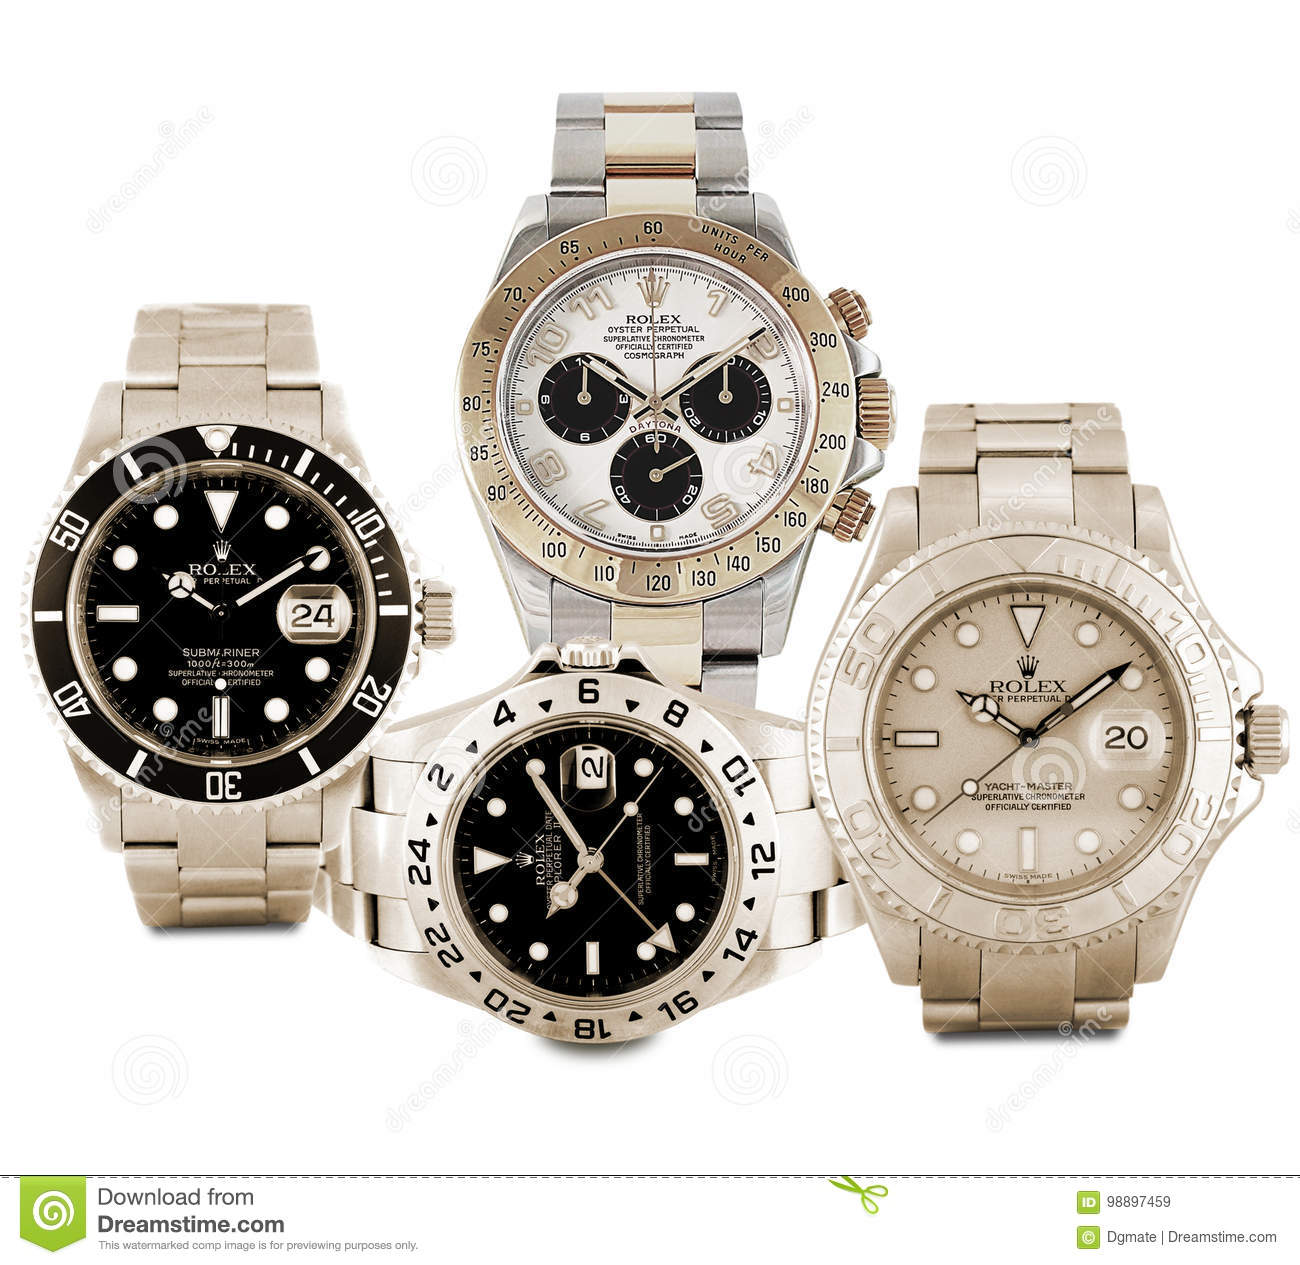 Rolex Watches Editorial Stock Image Image Of Stainless 98897459